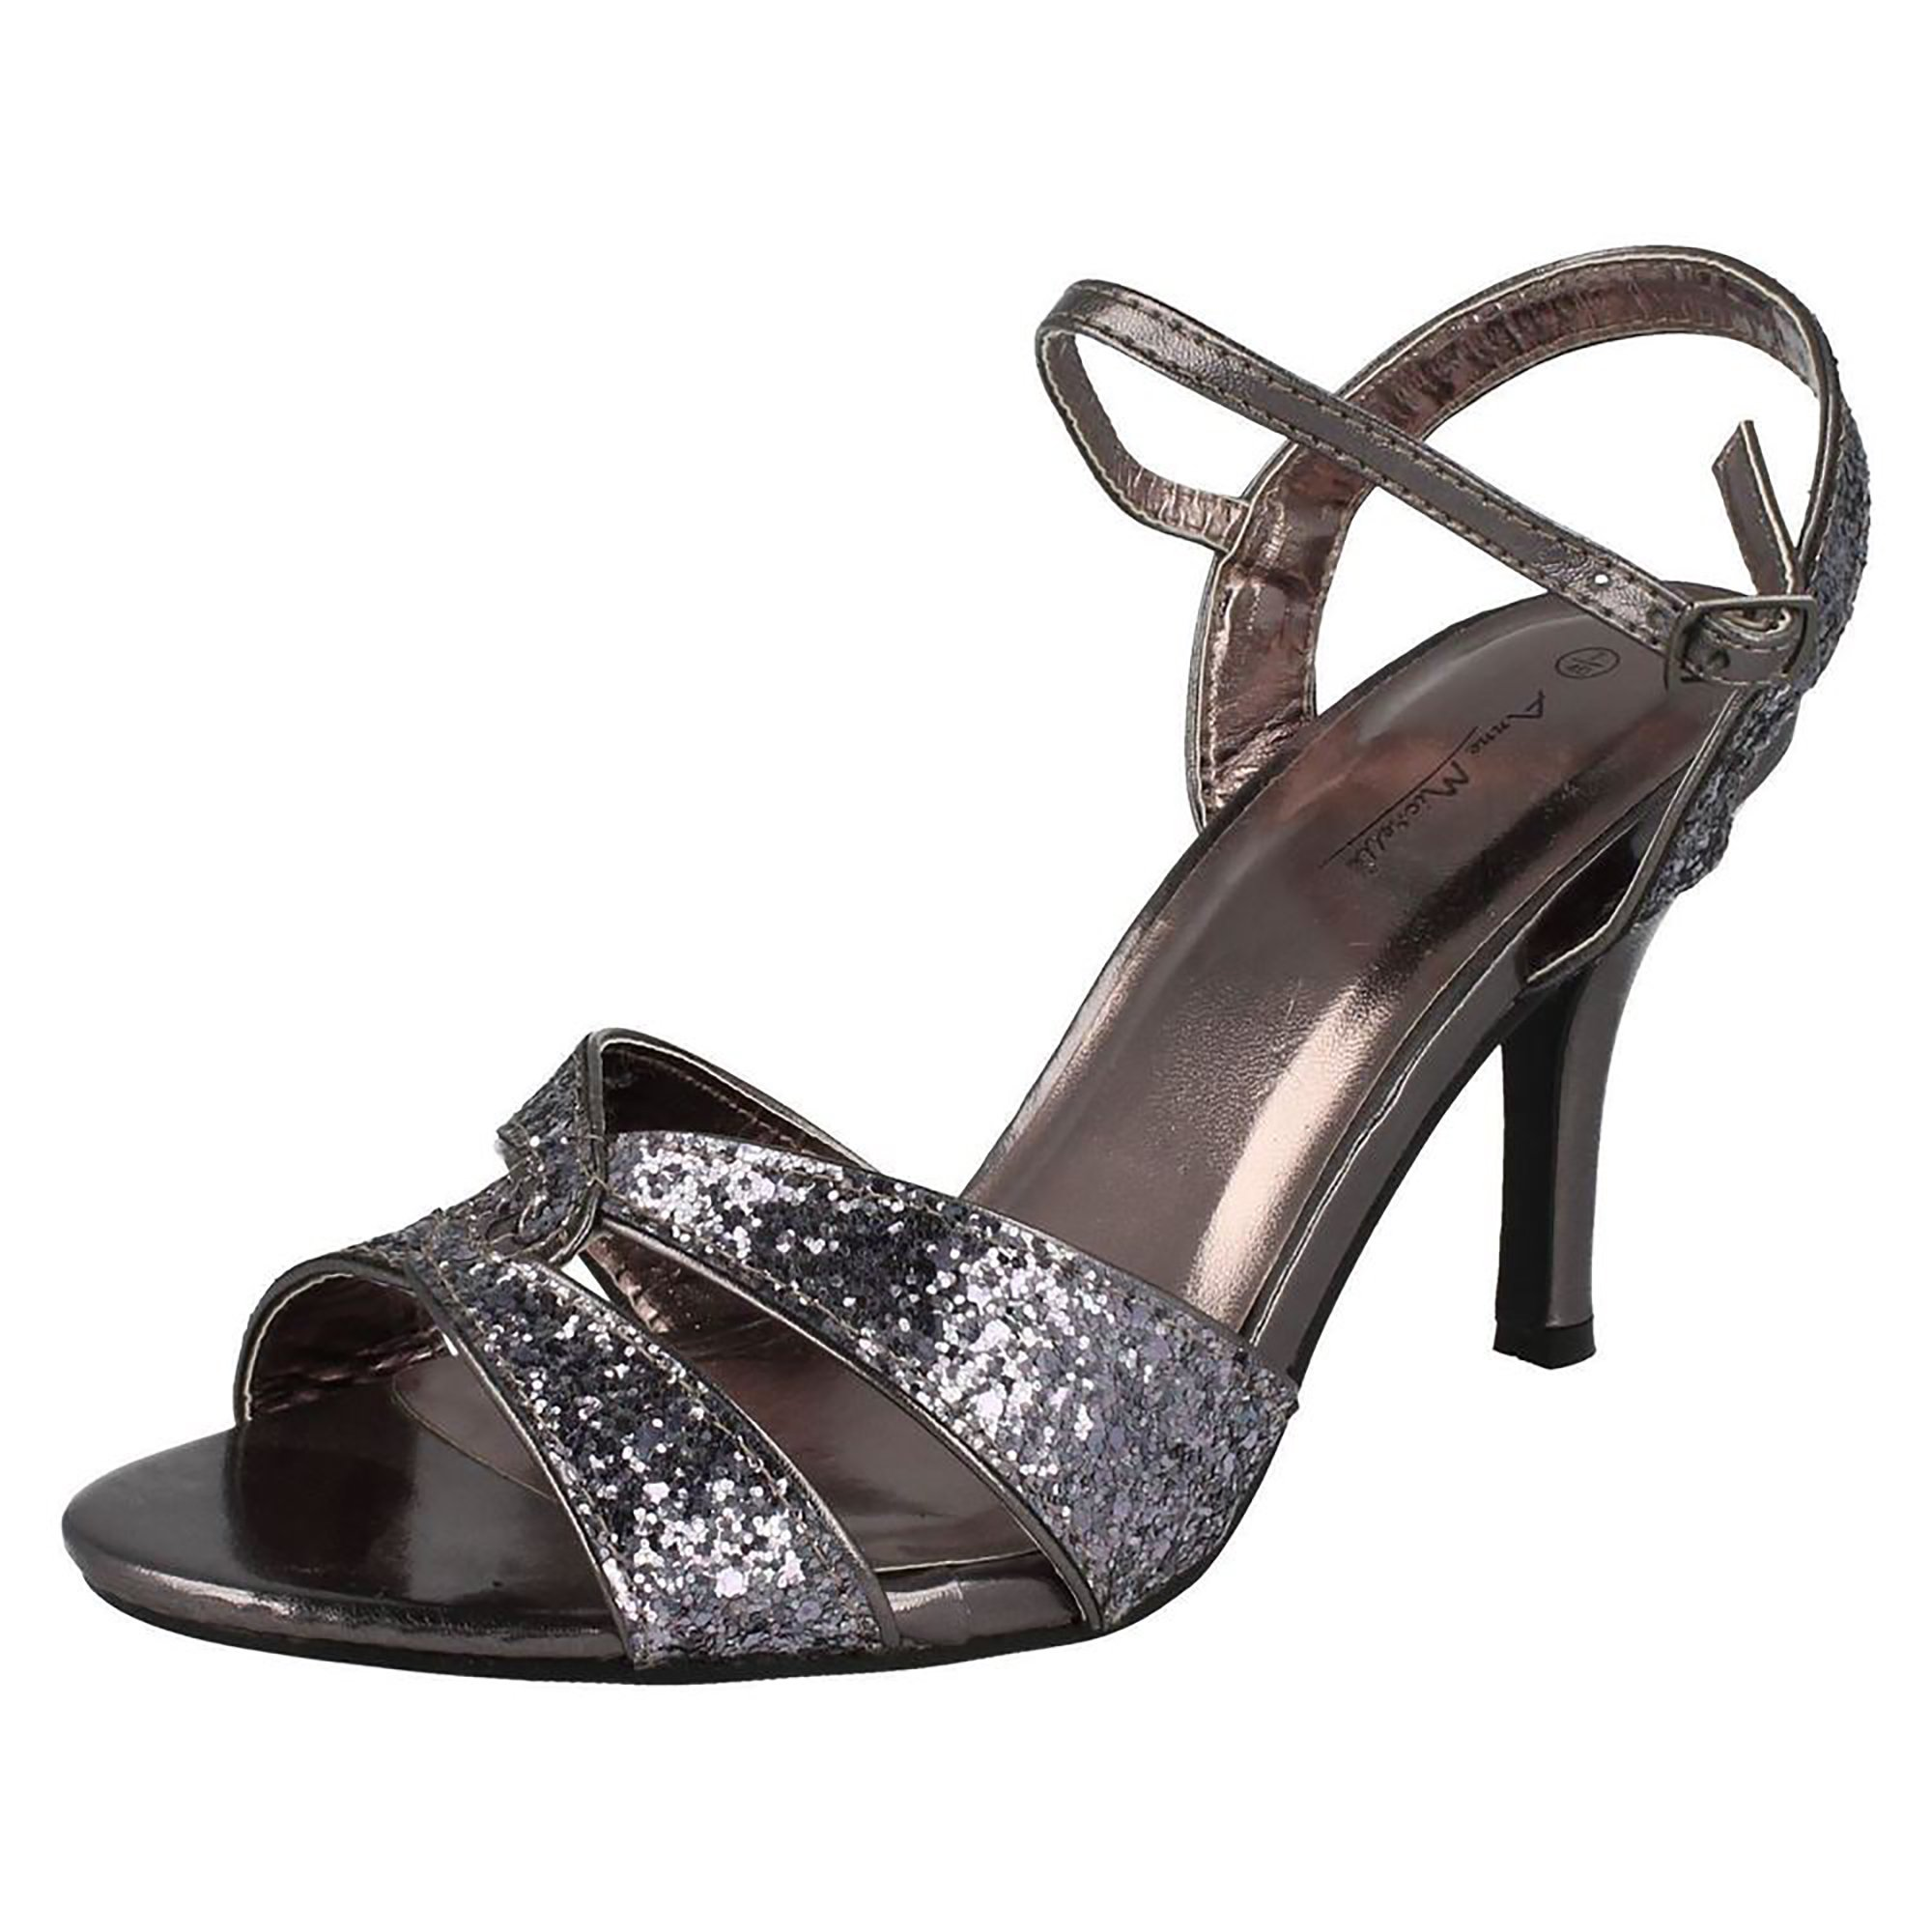 Anne Michelle Womens/Ladies Twisted Glitter Heeled Sandals (8 US) (Pewter)